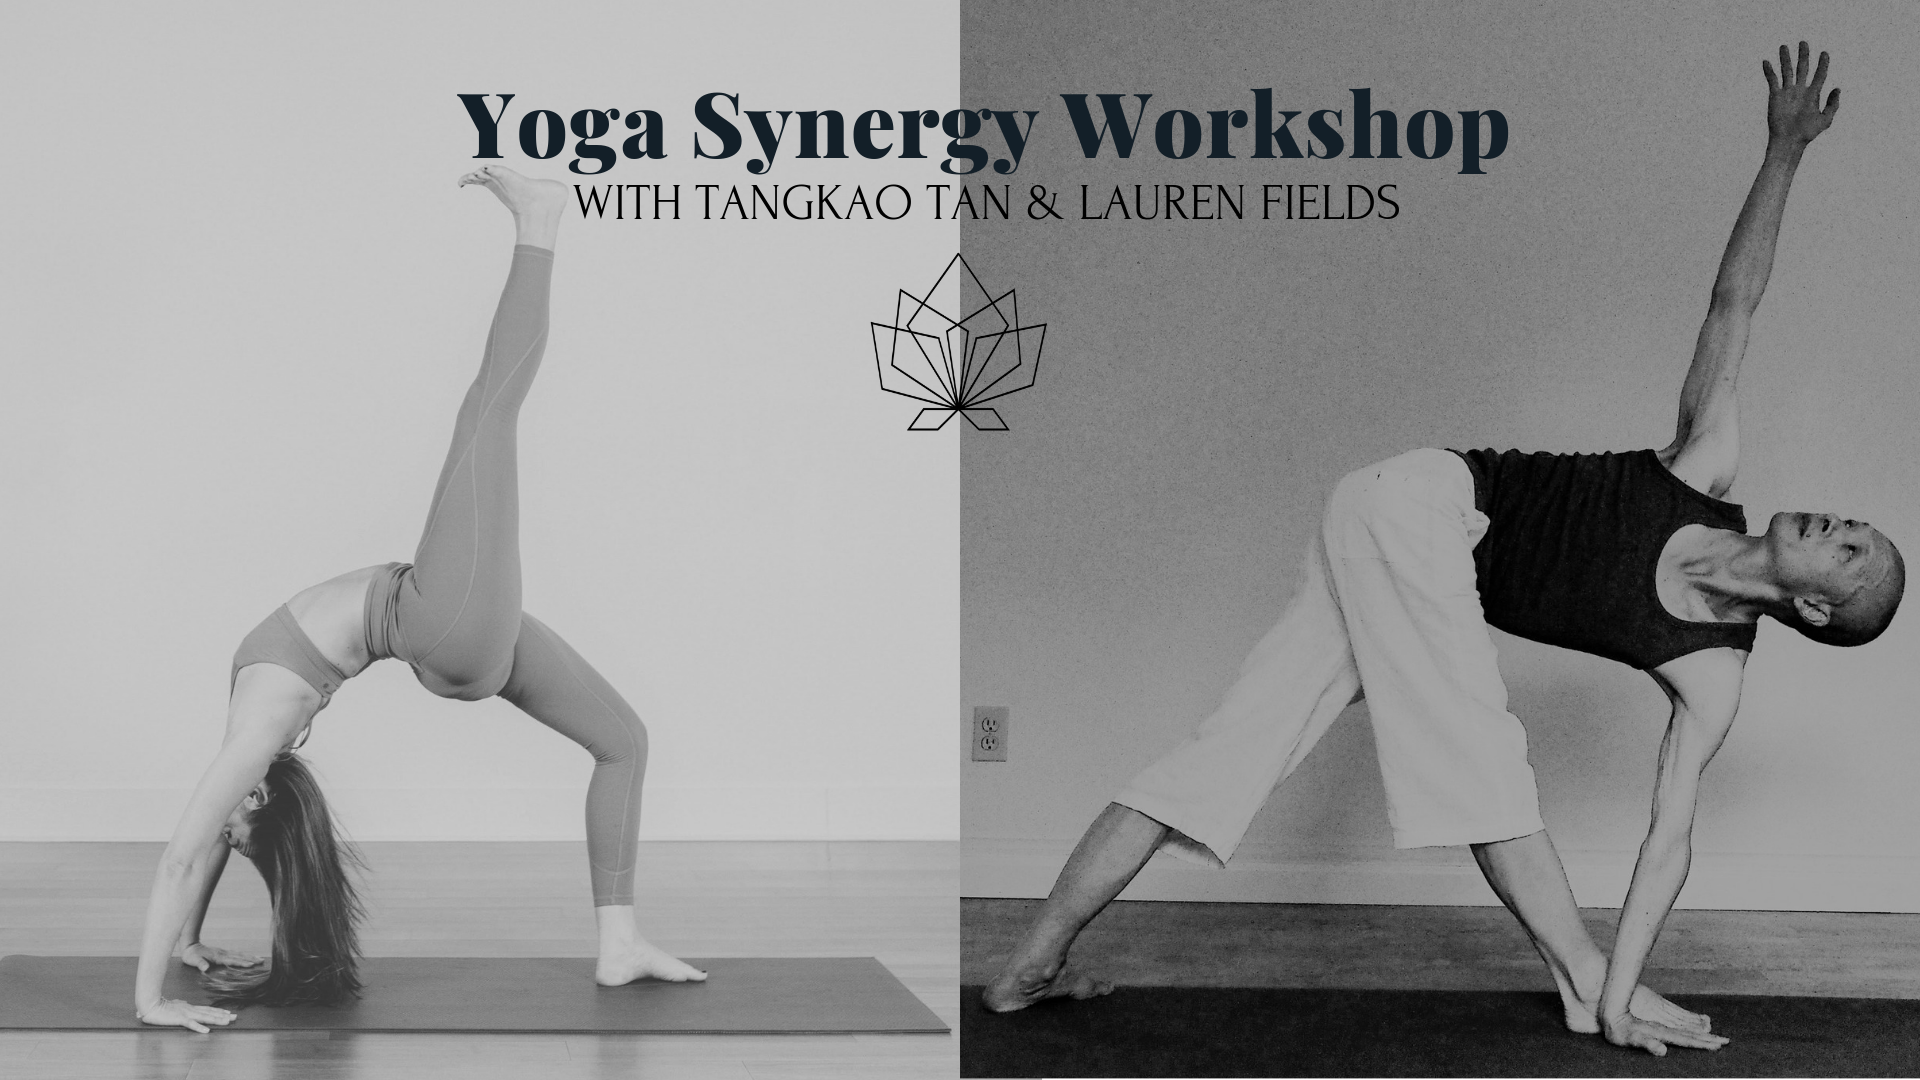 Yoga Synergy Workshop - This is a 2-day workshop in which you will learn spinal movement, core-initiated movement, and natural breathwork. Option for CEUs and can sign up for one day or both!